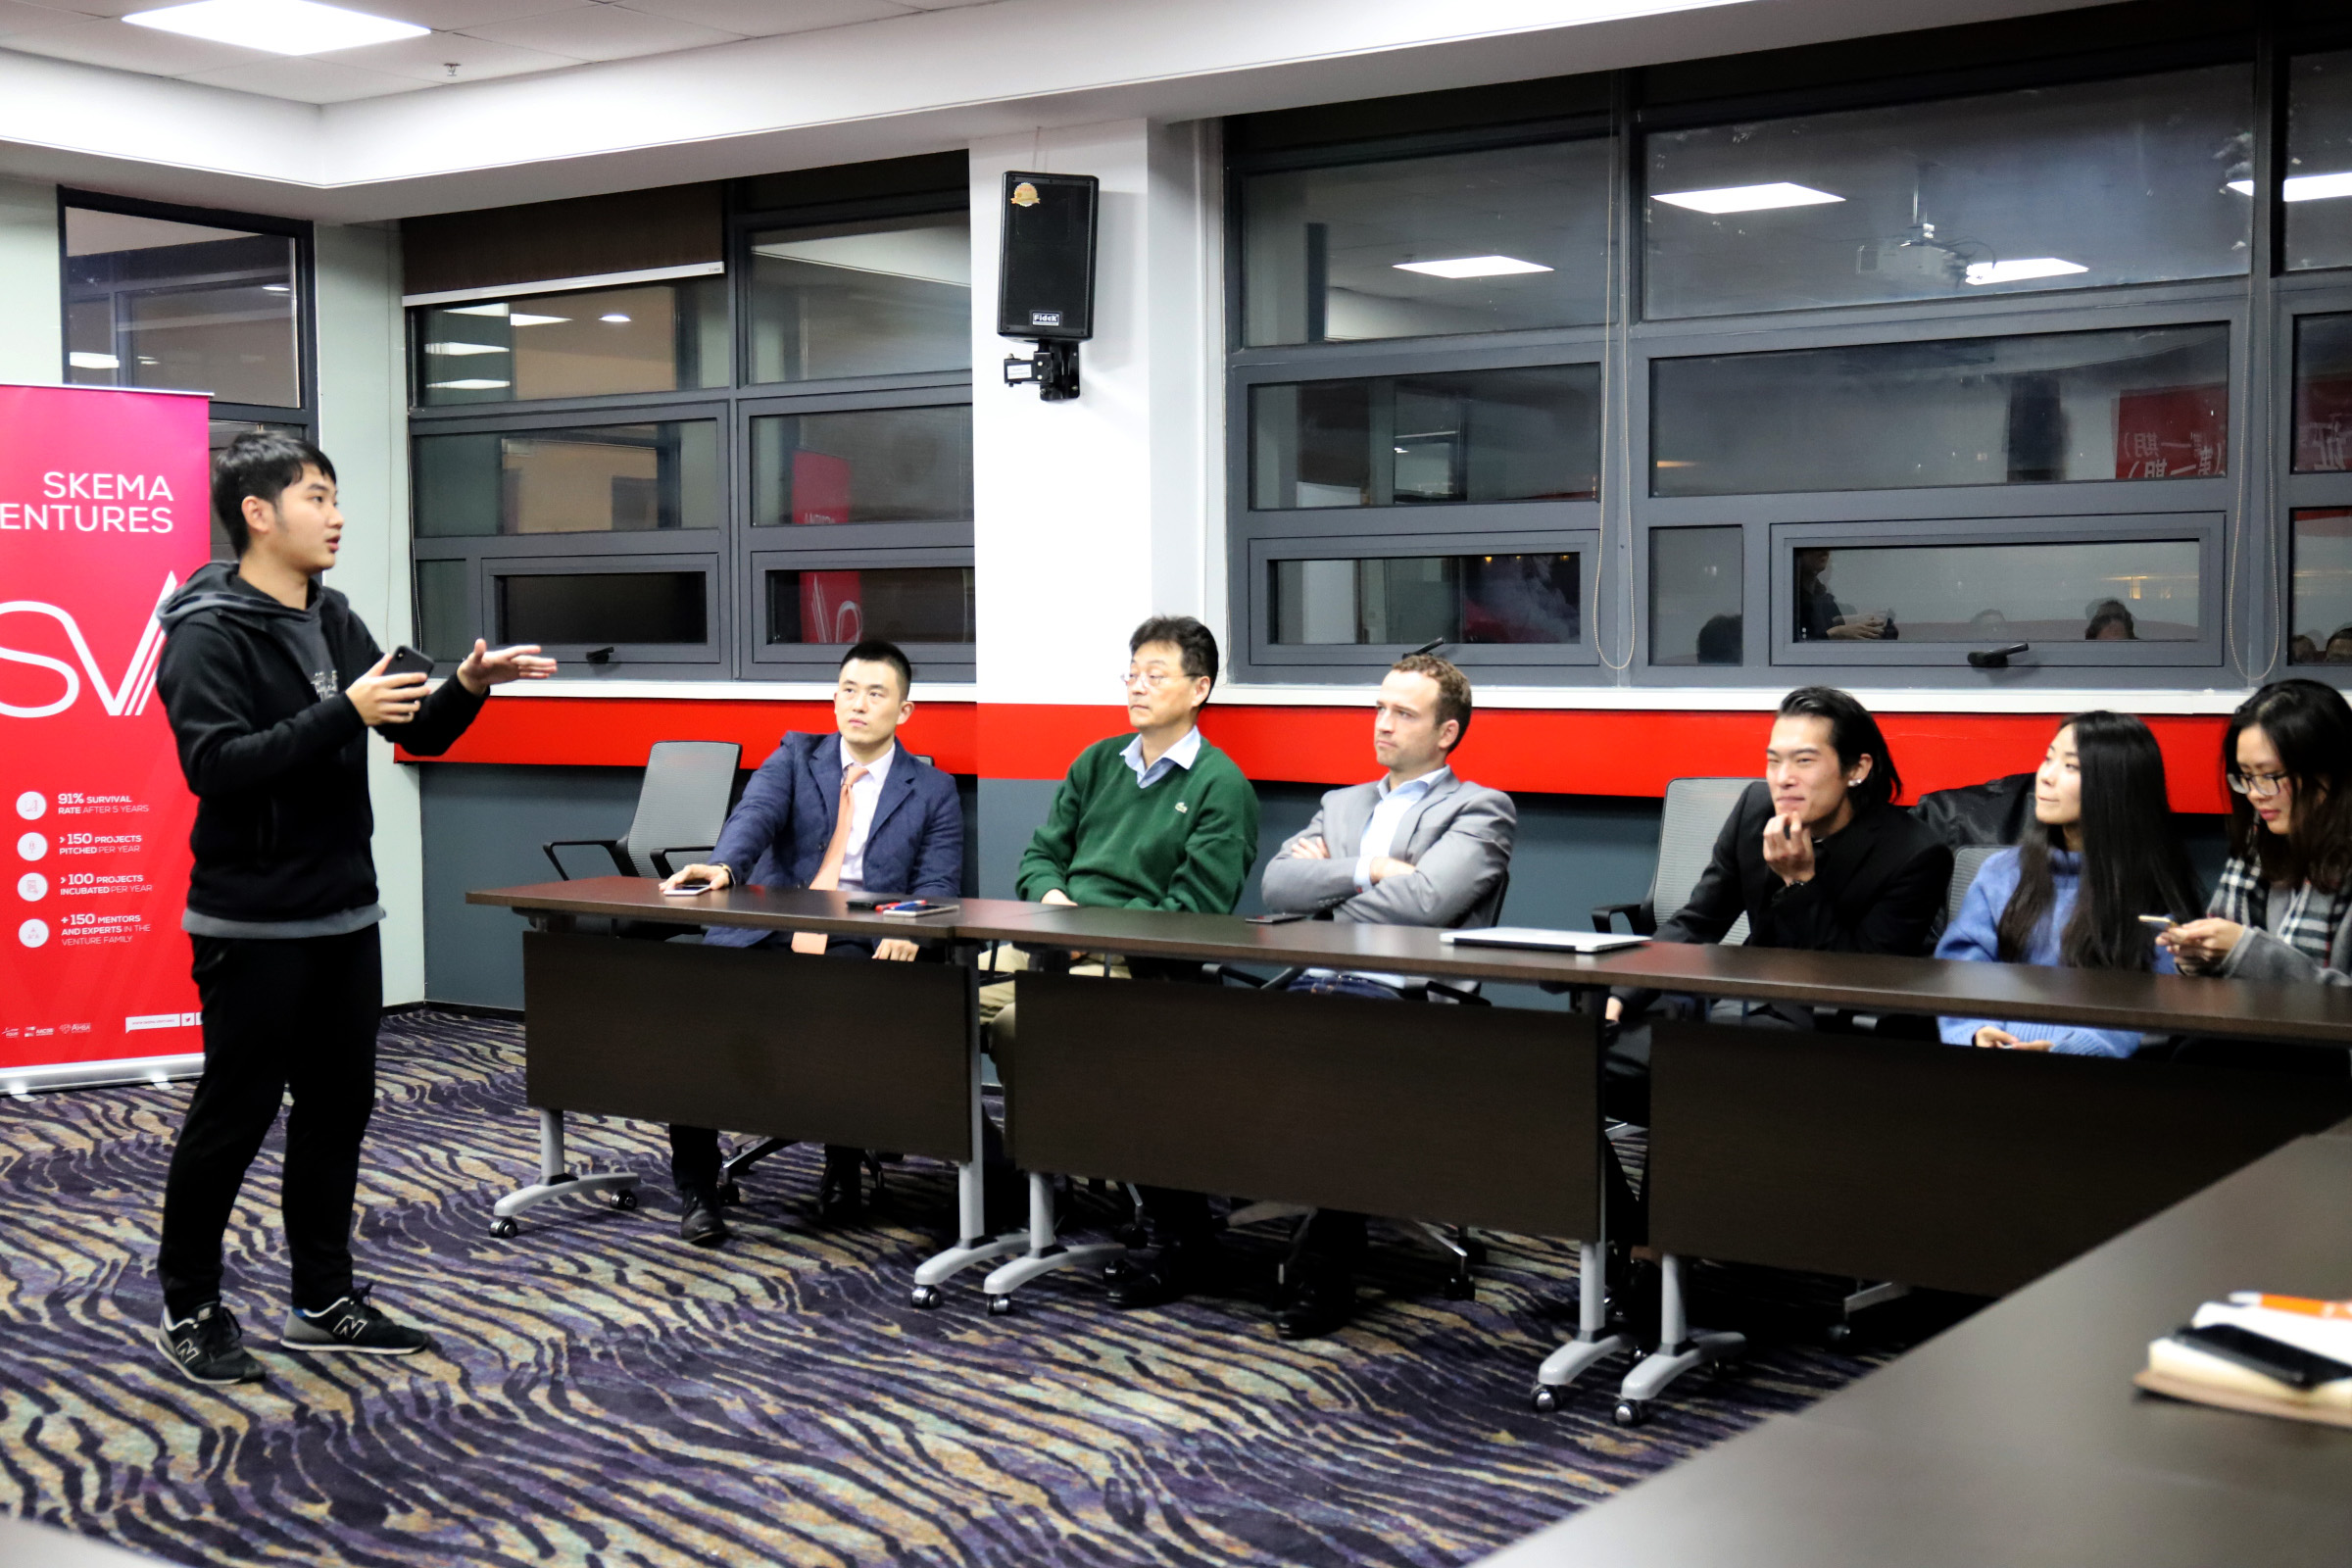 Latest updates from SKEMA Business School's campus in China